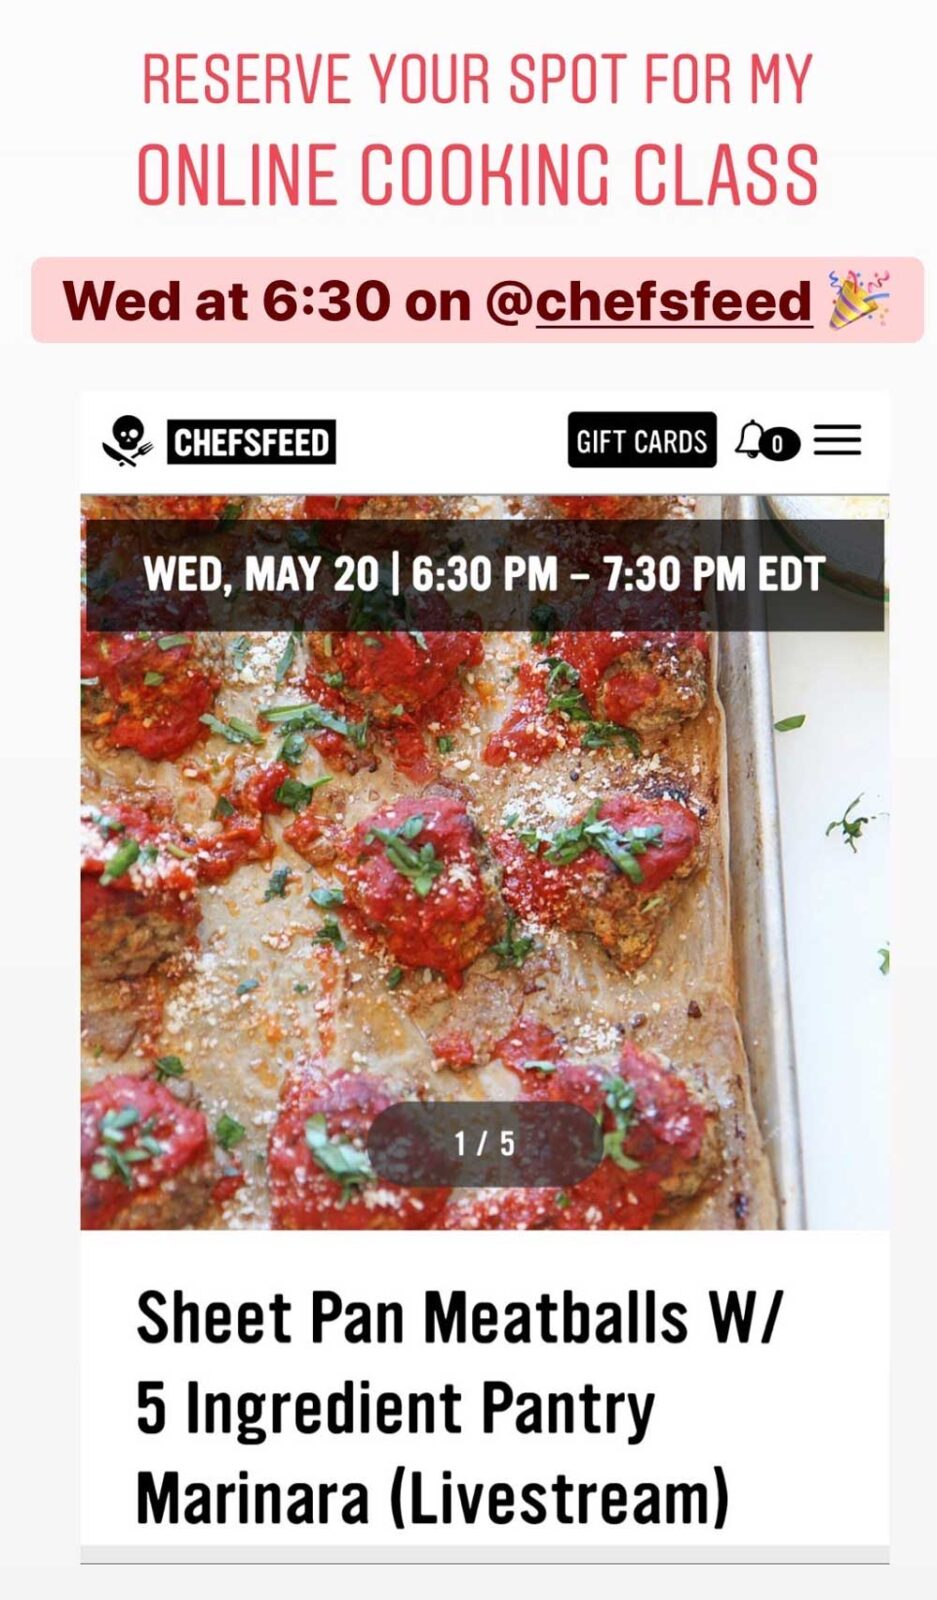 Meatballs and Marinara Cooking Class . This Wednesday May20th. Meatballs cooked on a sheet tray and 5 ingredient marinara! Happy Cooking! www.ChopsHapy.com #cookingclass #onlinecookingclass